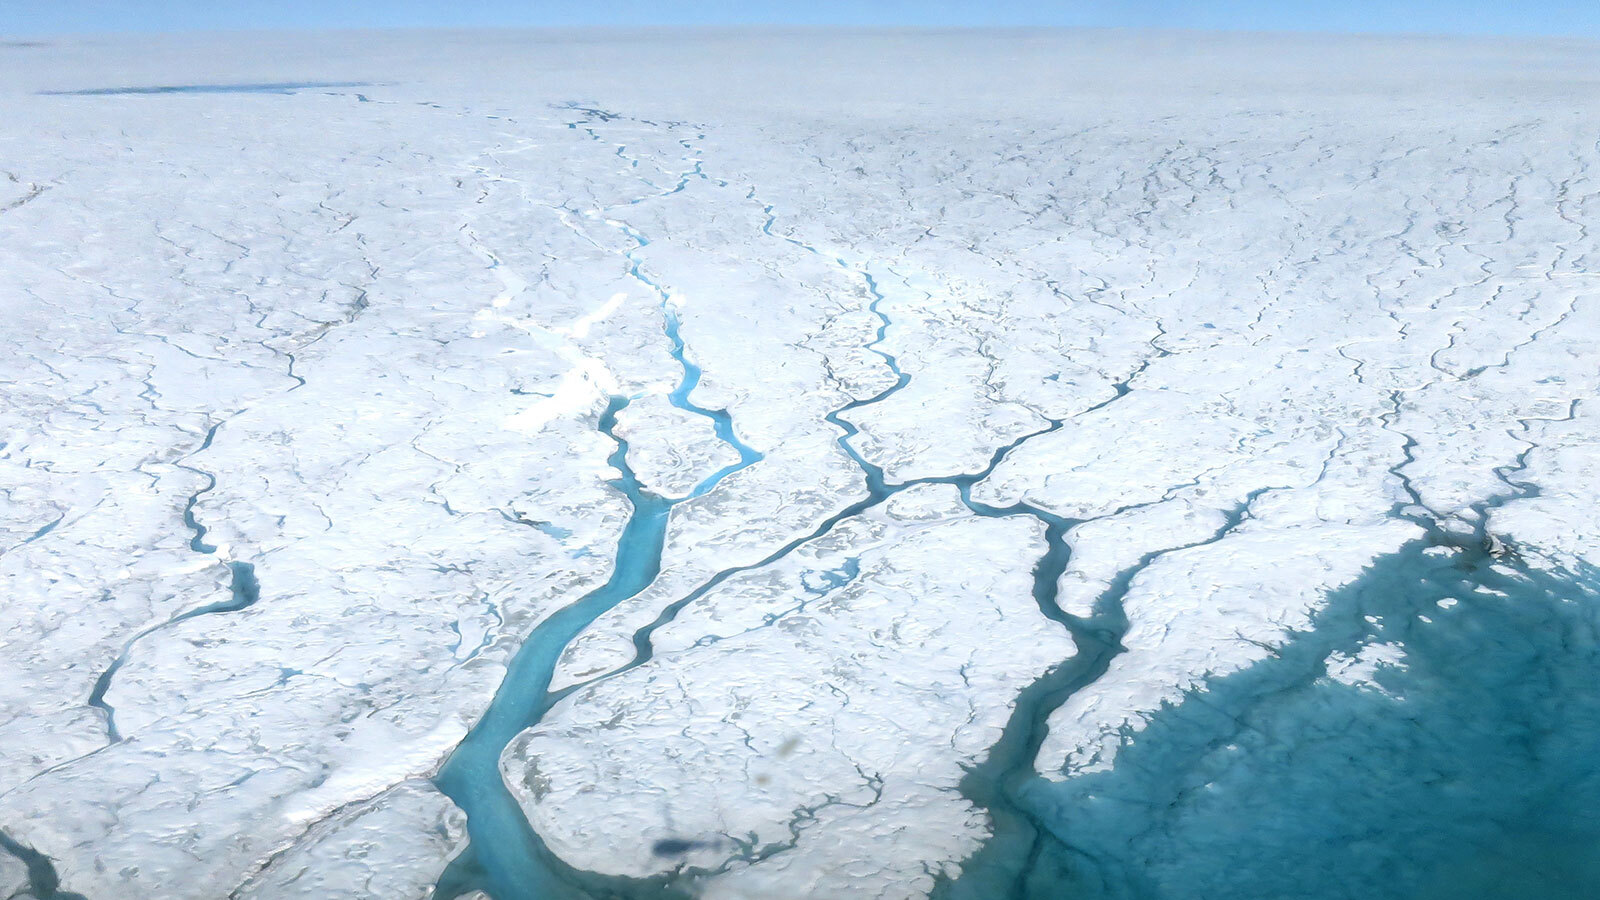 Aerial photograph of meltwater rivers branching out across the Greenland Ice Sheet